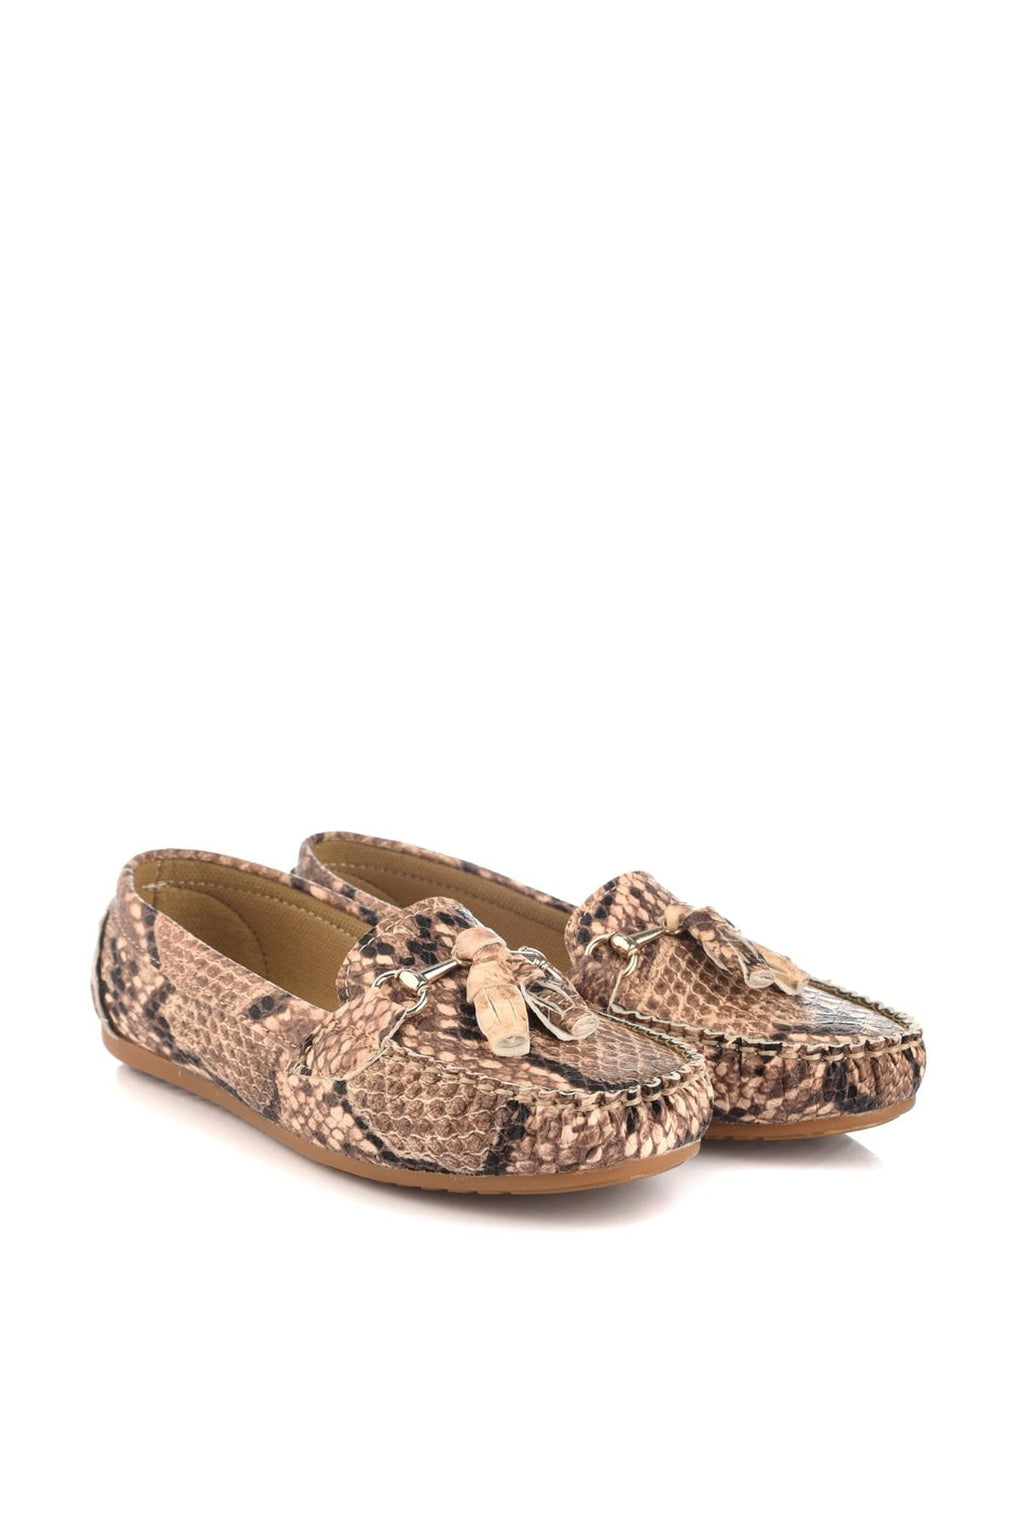 Snake Pattern Loafer Shoes - klozetstyle.com